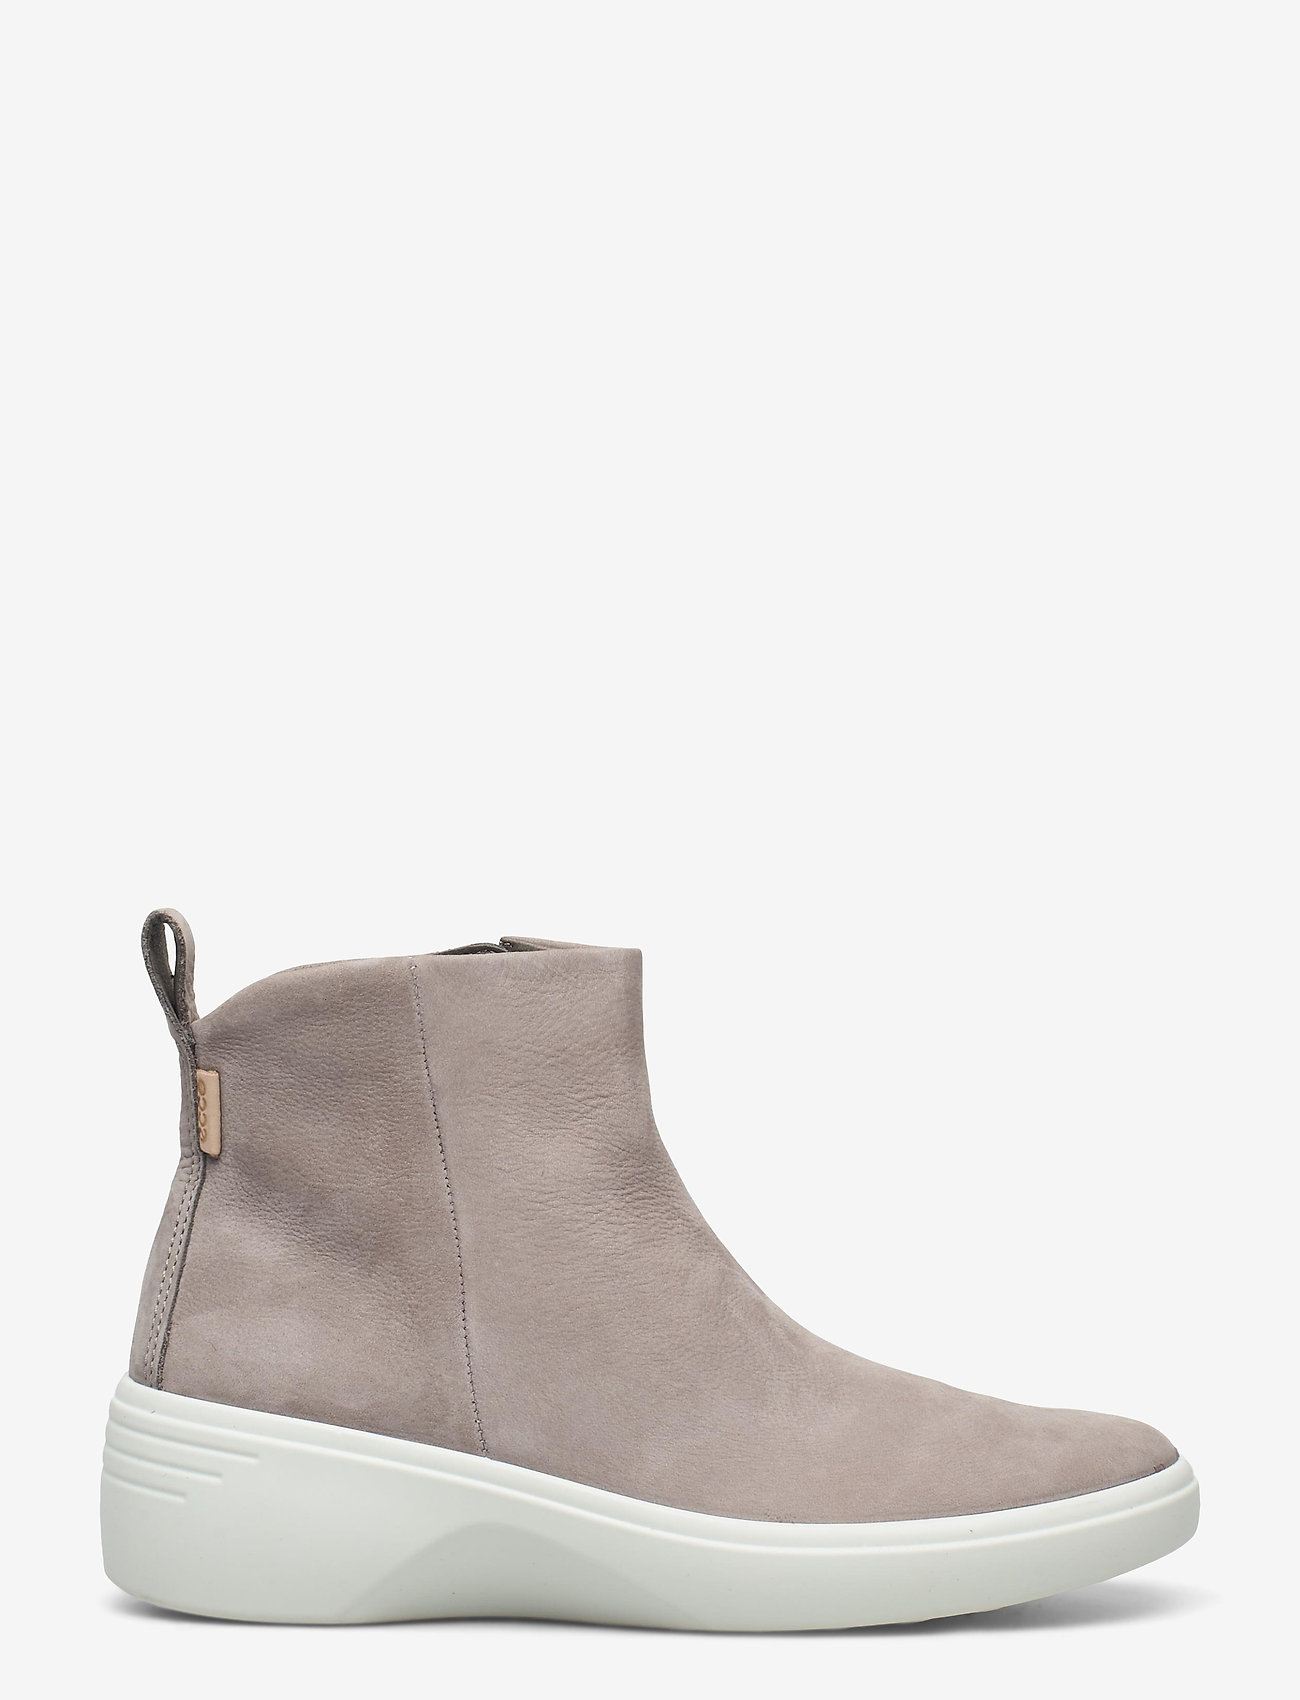 ECCO - SOFT 7 WEDGE W - platte enkellaarsjes - warm grey - 1